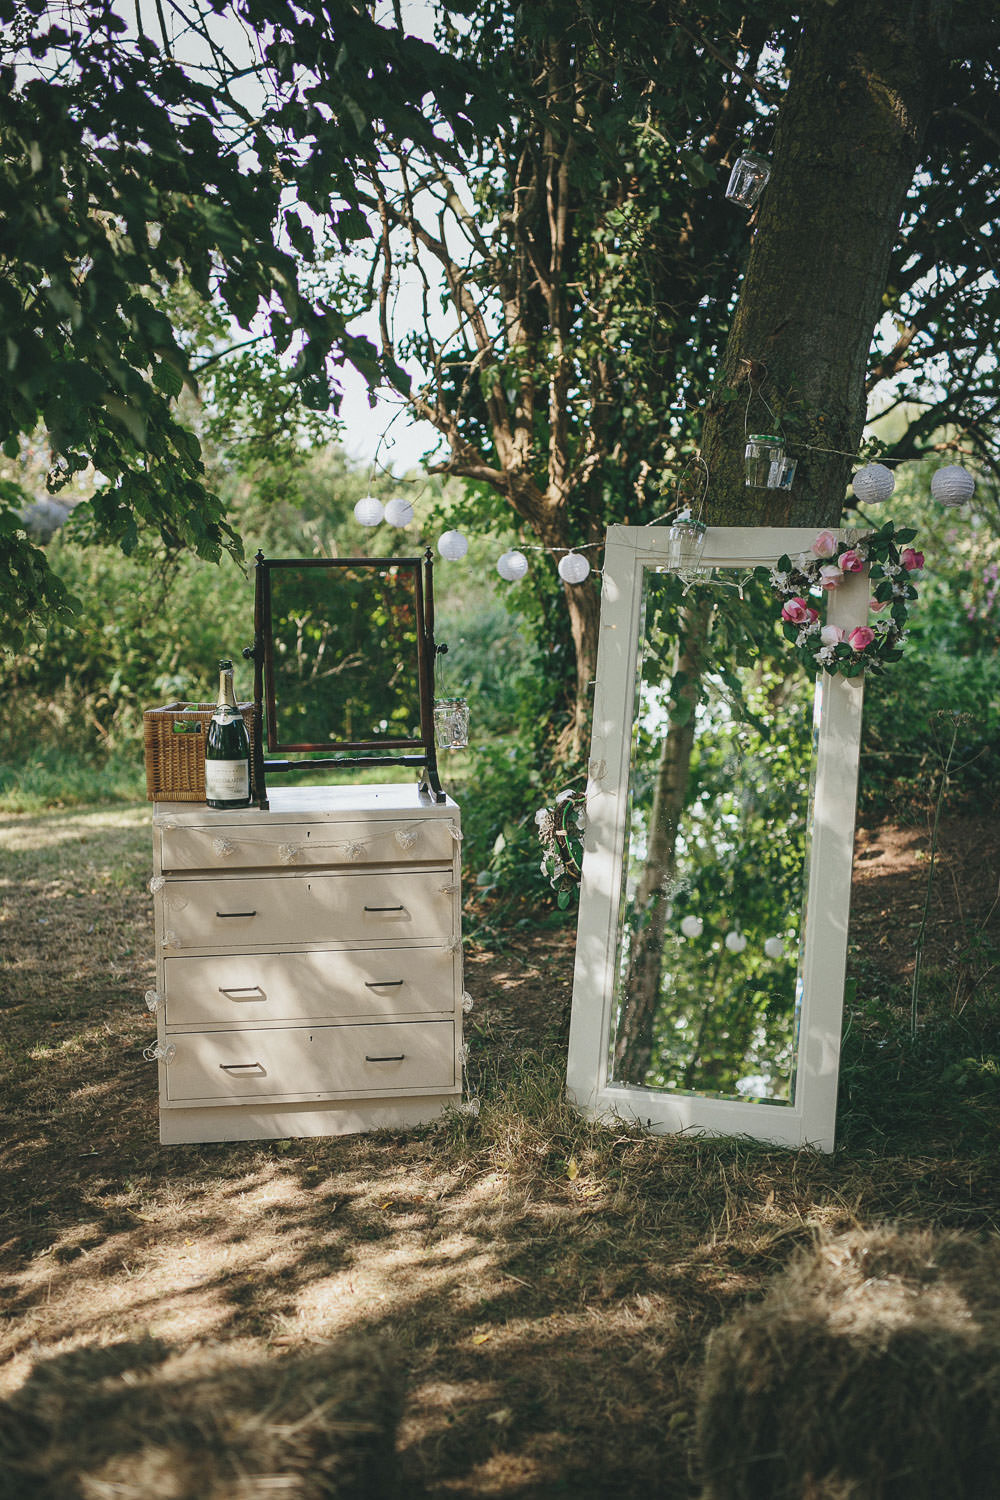 Country Wedding Decorations 69 Luxury Image by uca